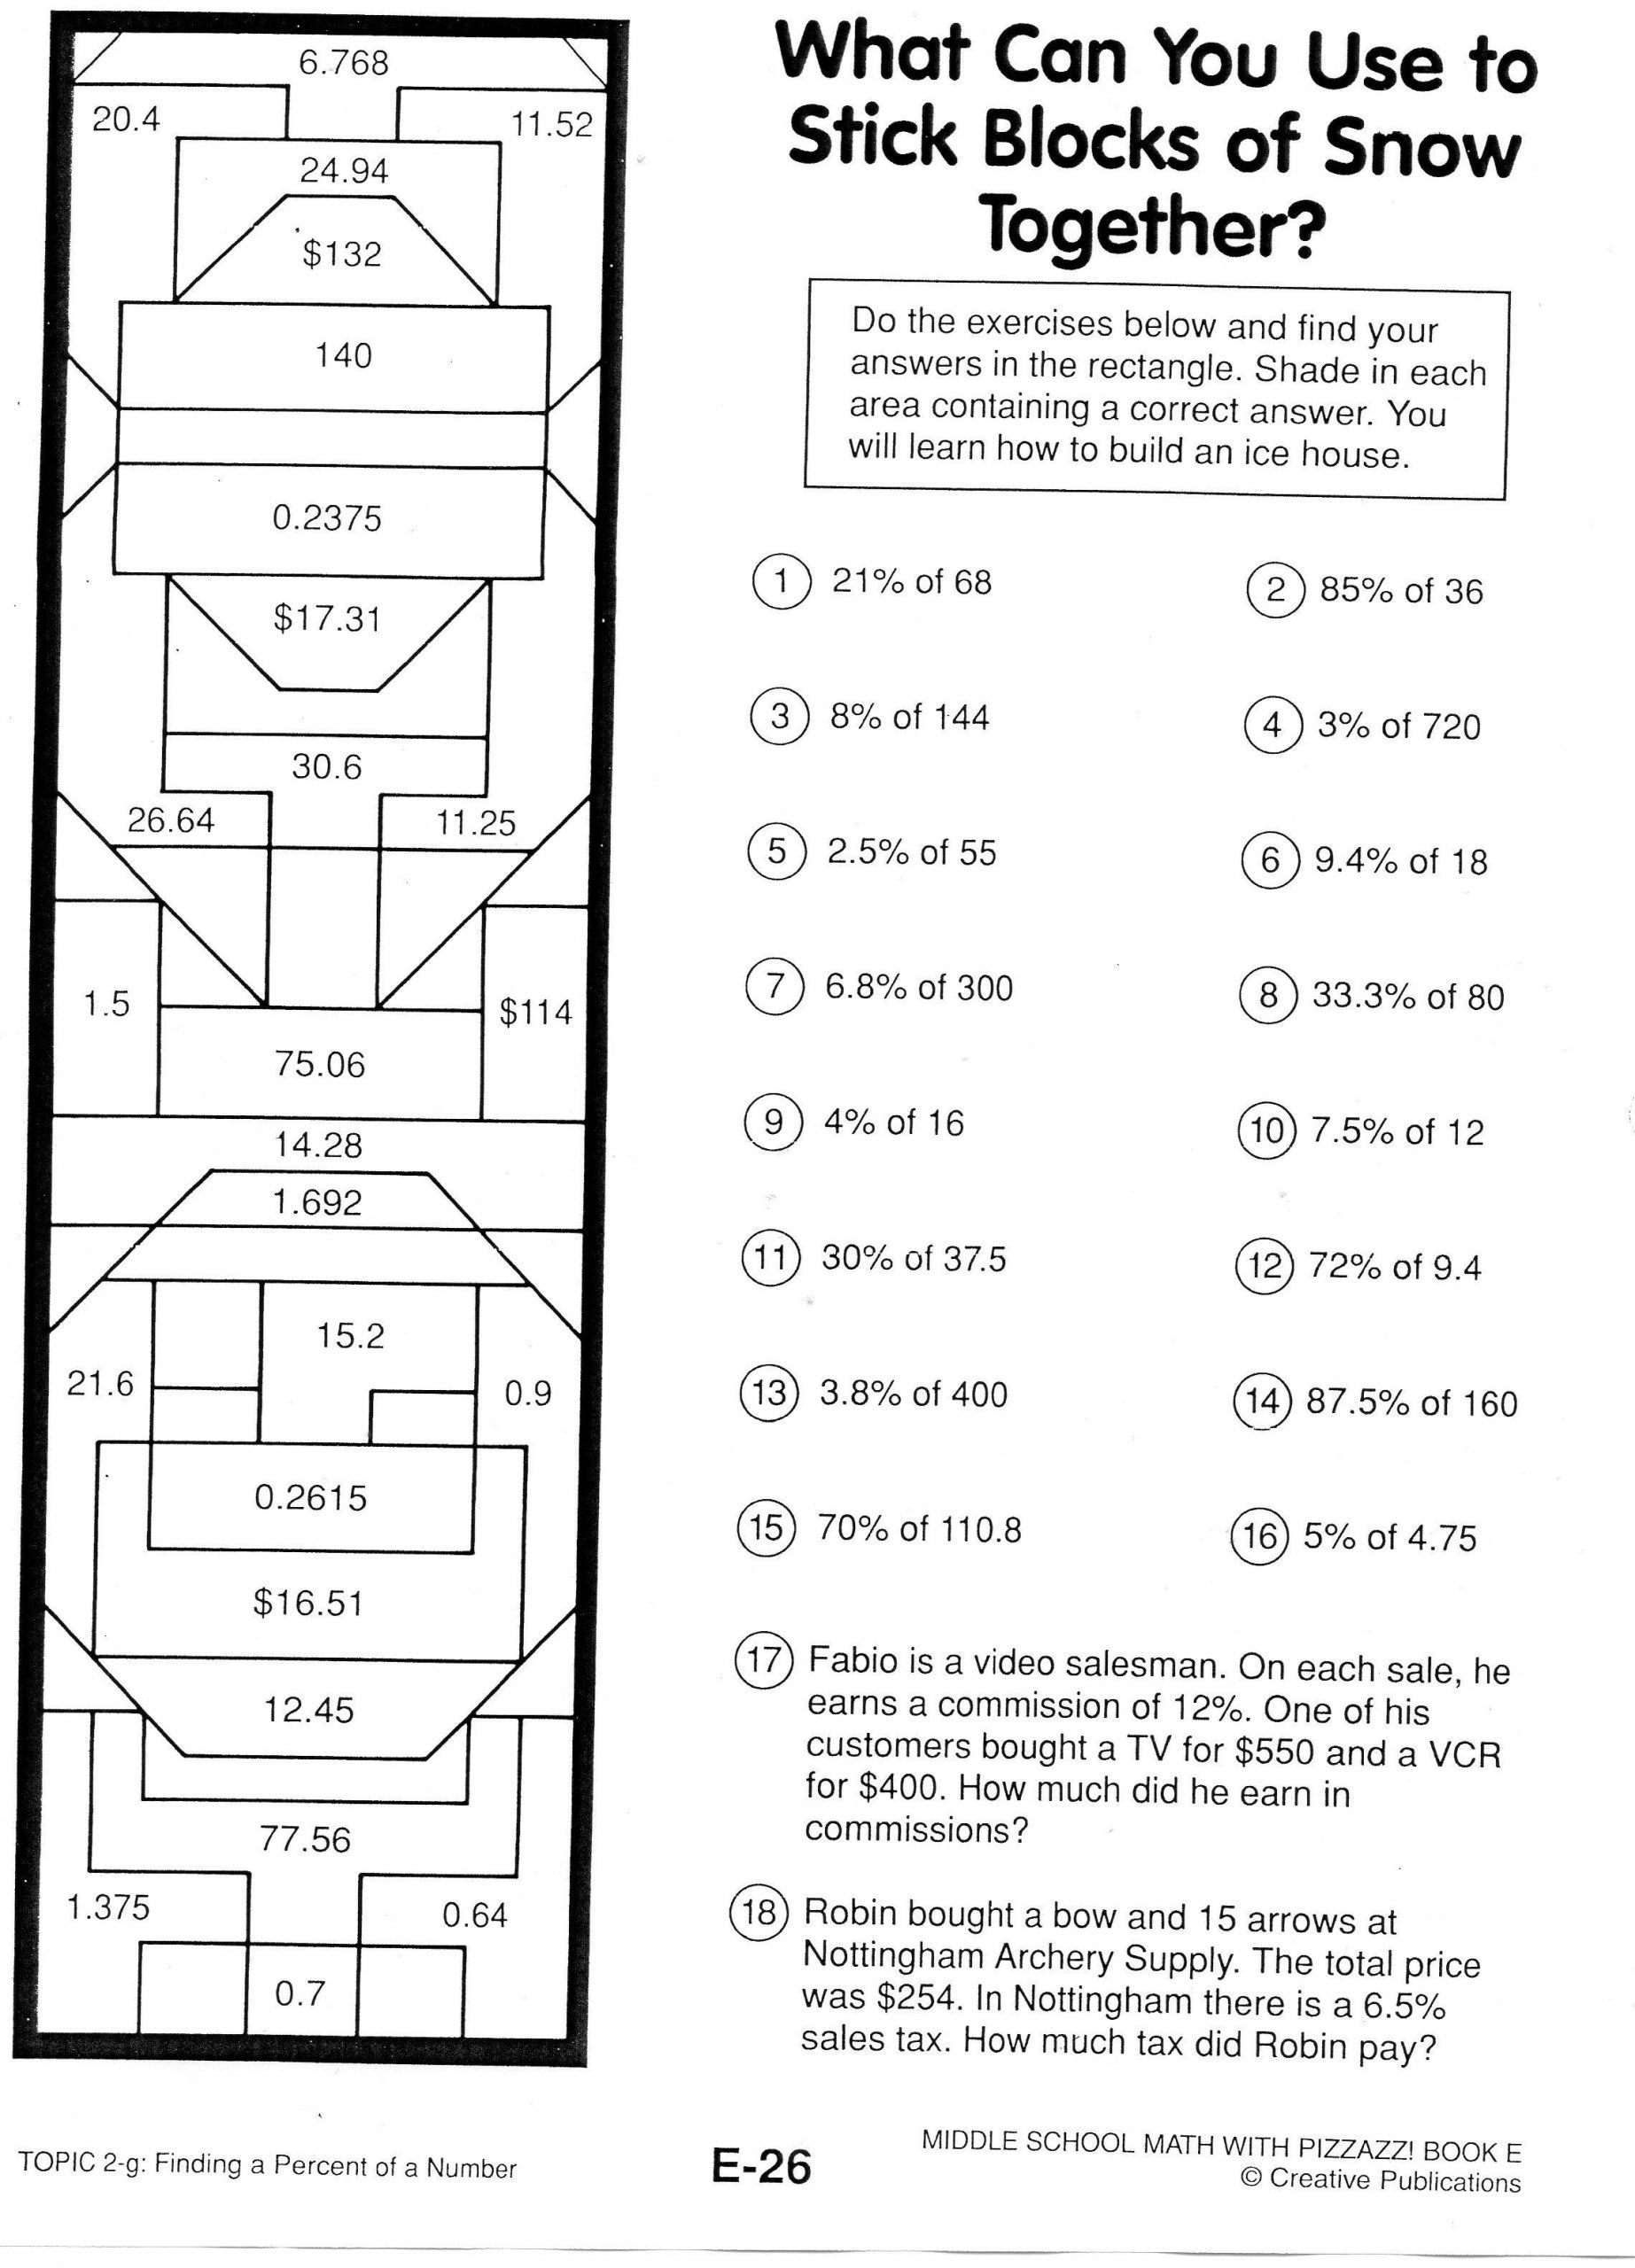 6th Grade Math Puzzles Printable 7th Grade Math Puzzles Google Search In 2021 Maths Puzzles Math Logic Puzzles 7th Grade Math